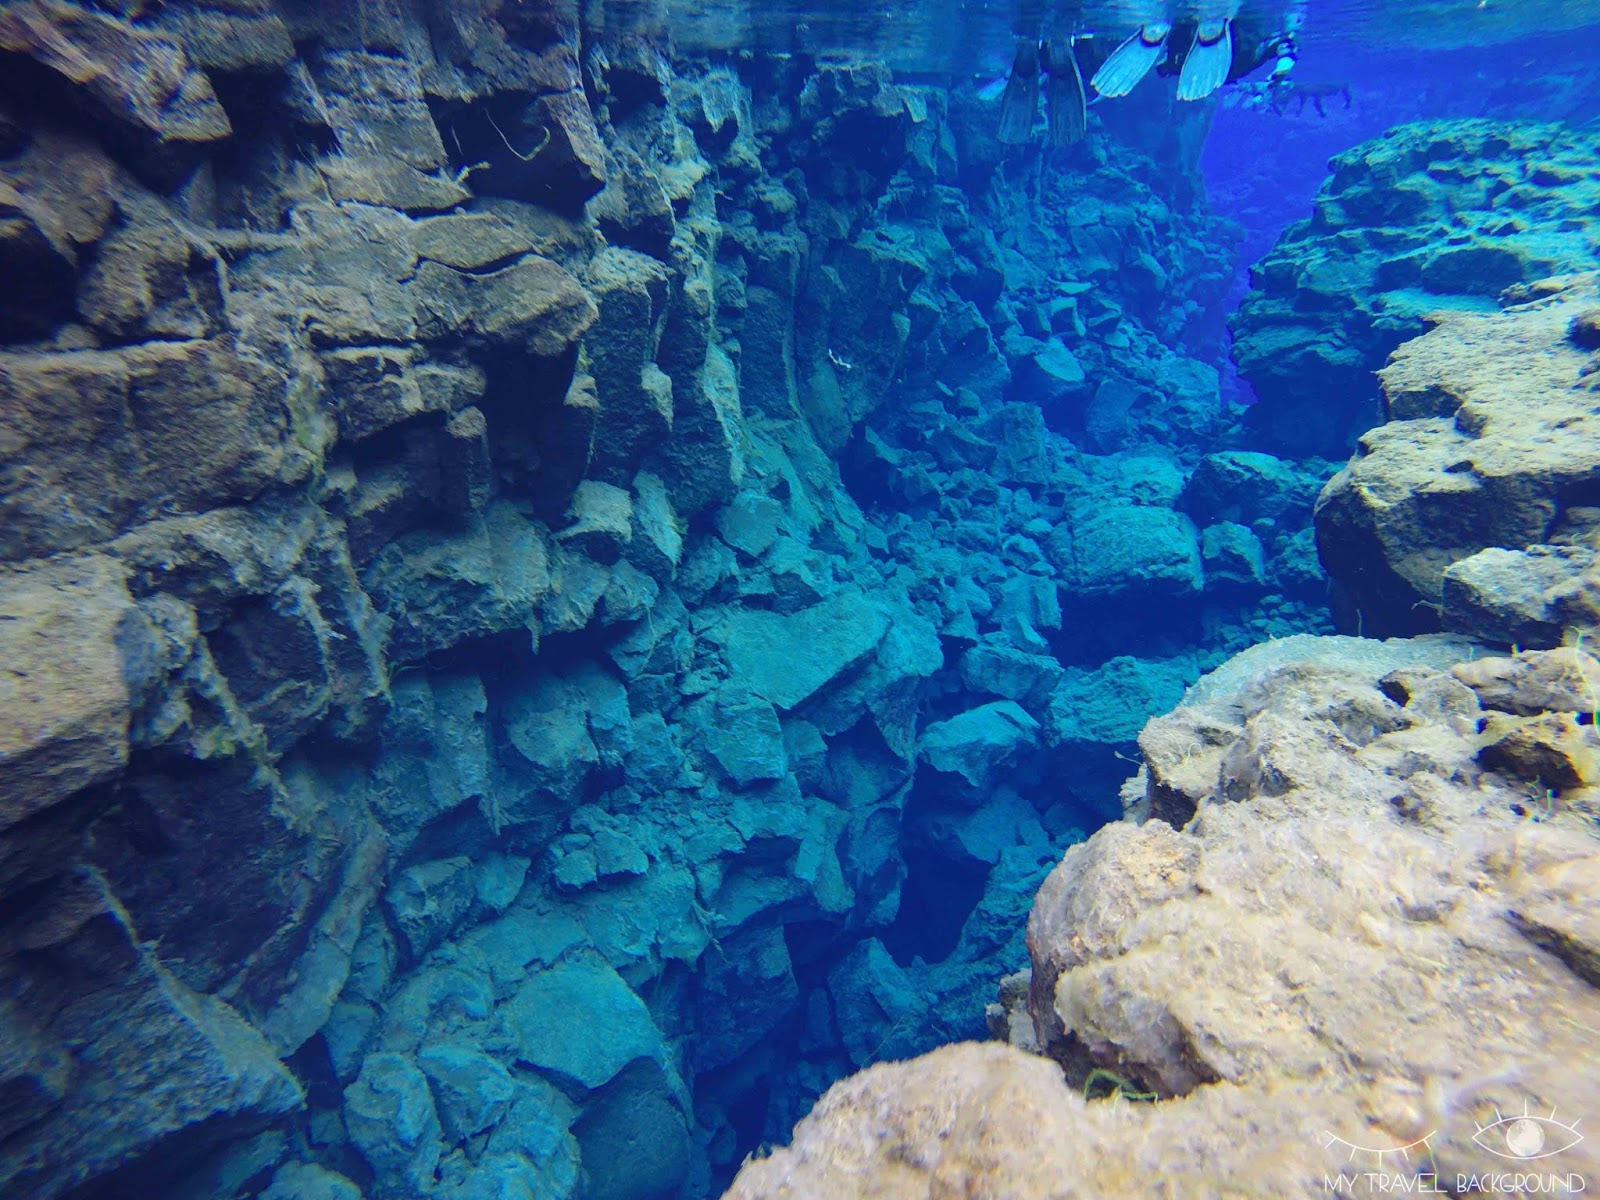 My Travel Background : plongée / Snorkelling dans la faille de Silfra en Islande